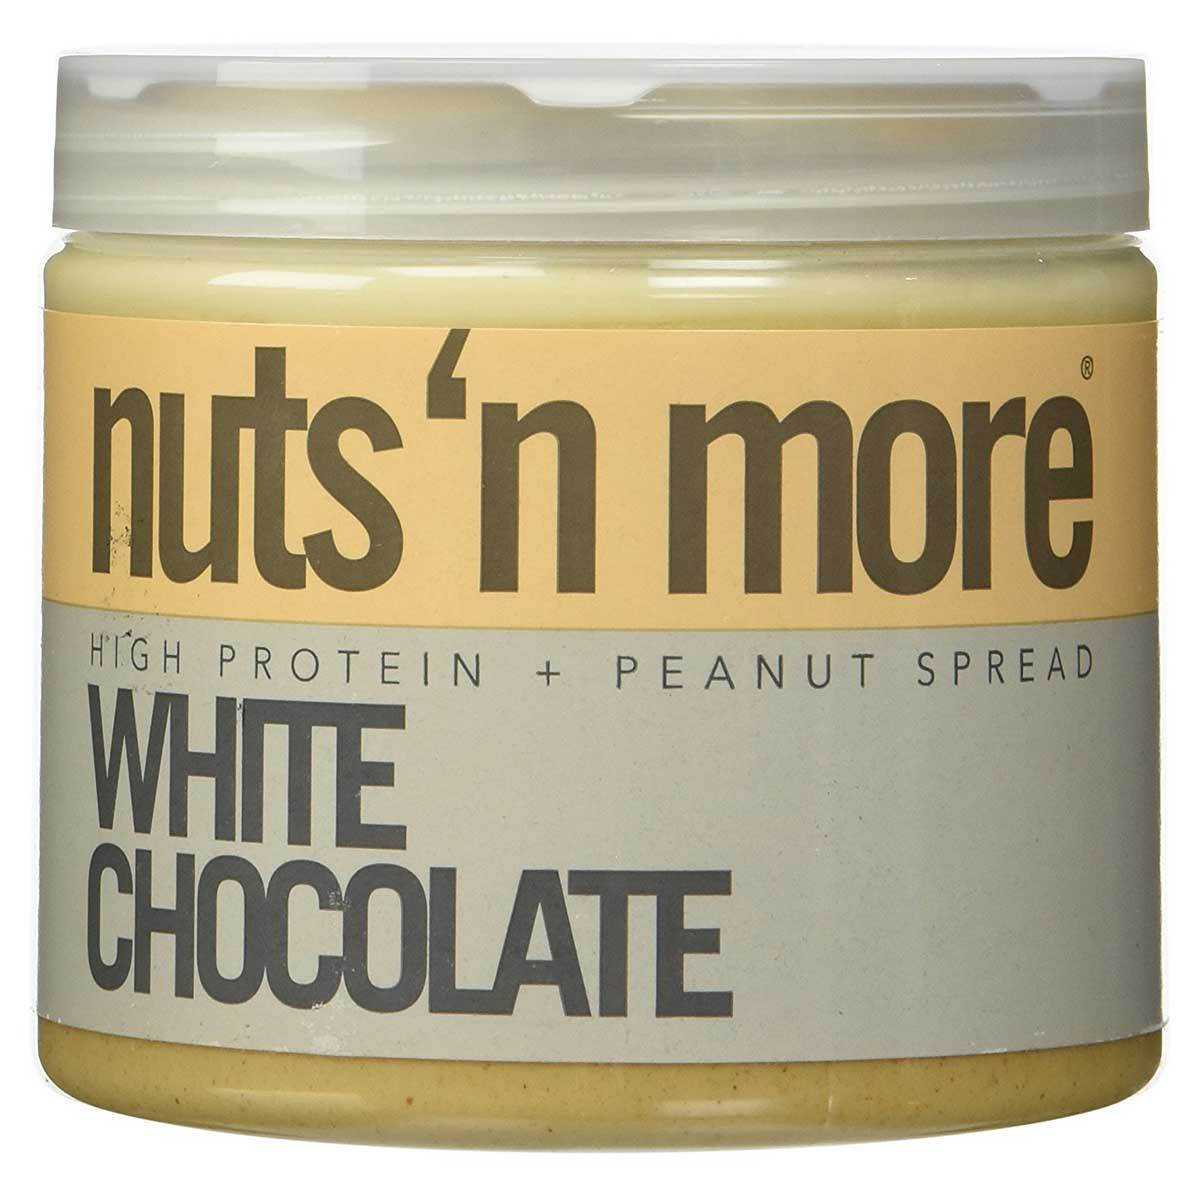 Nuts 'N More White Chocolate Peanut Butter 16 Oz Foods & Snacks Nuts 'N More  (1059232350251)